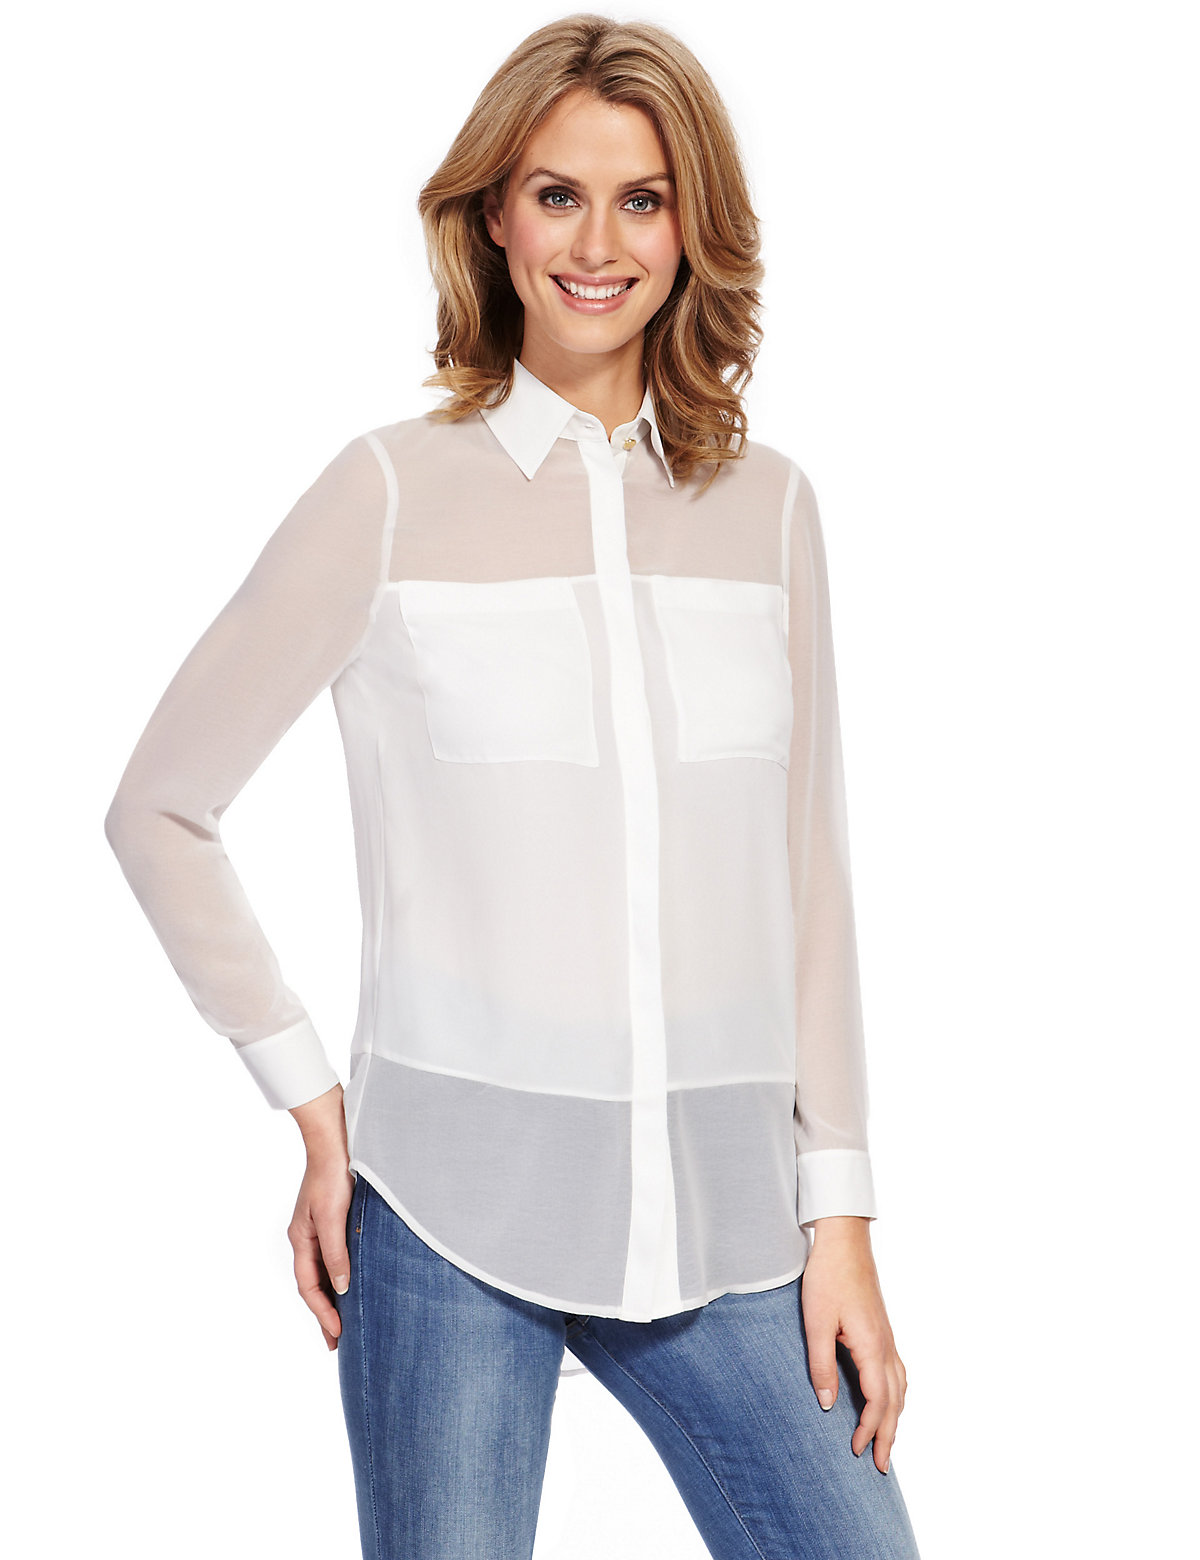 see through blouse what to wear under it smart casual blouse